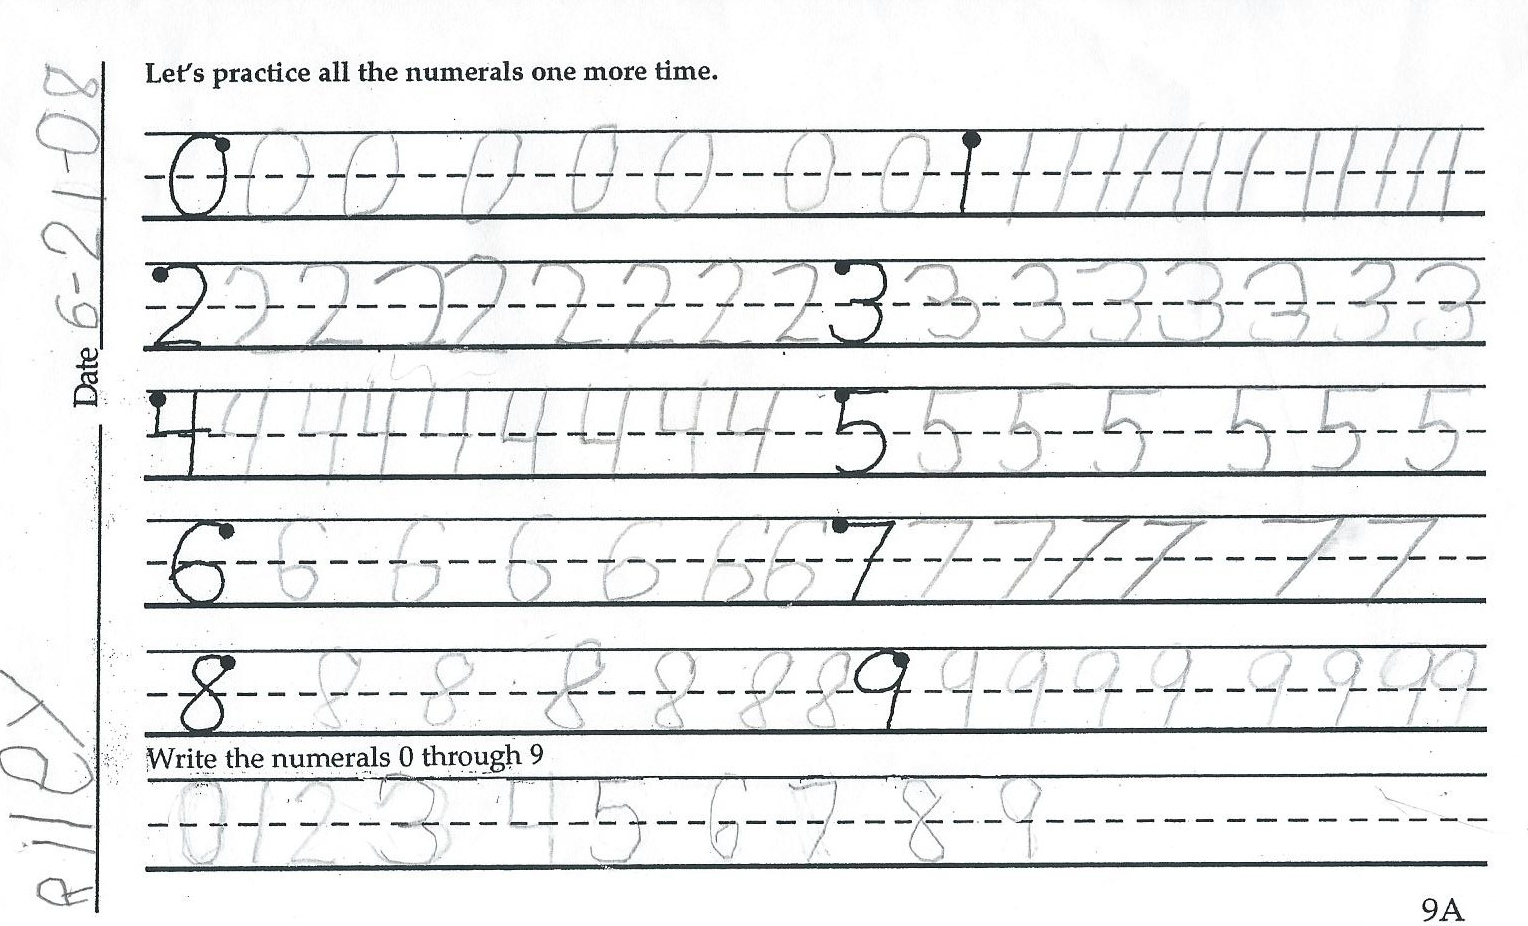 Worksheet Teaching Cursive Handwriting home school support network cursive first handwriting samples number practice